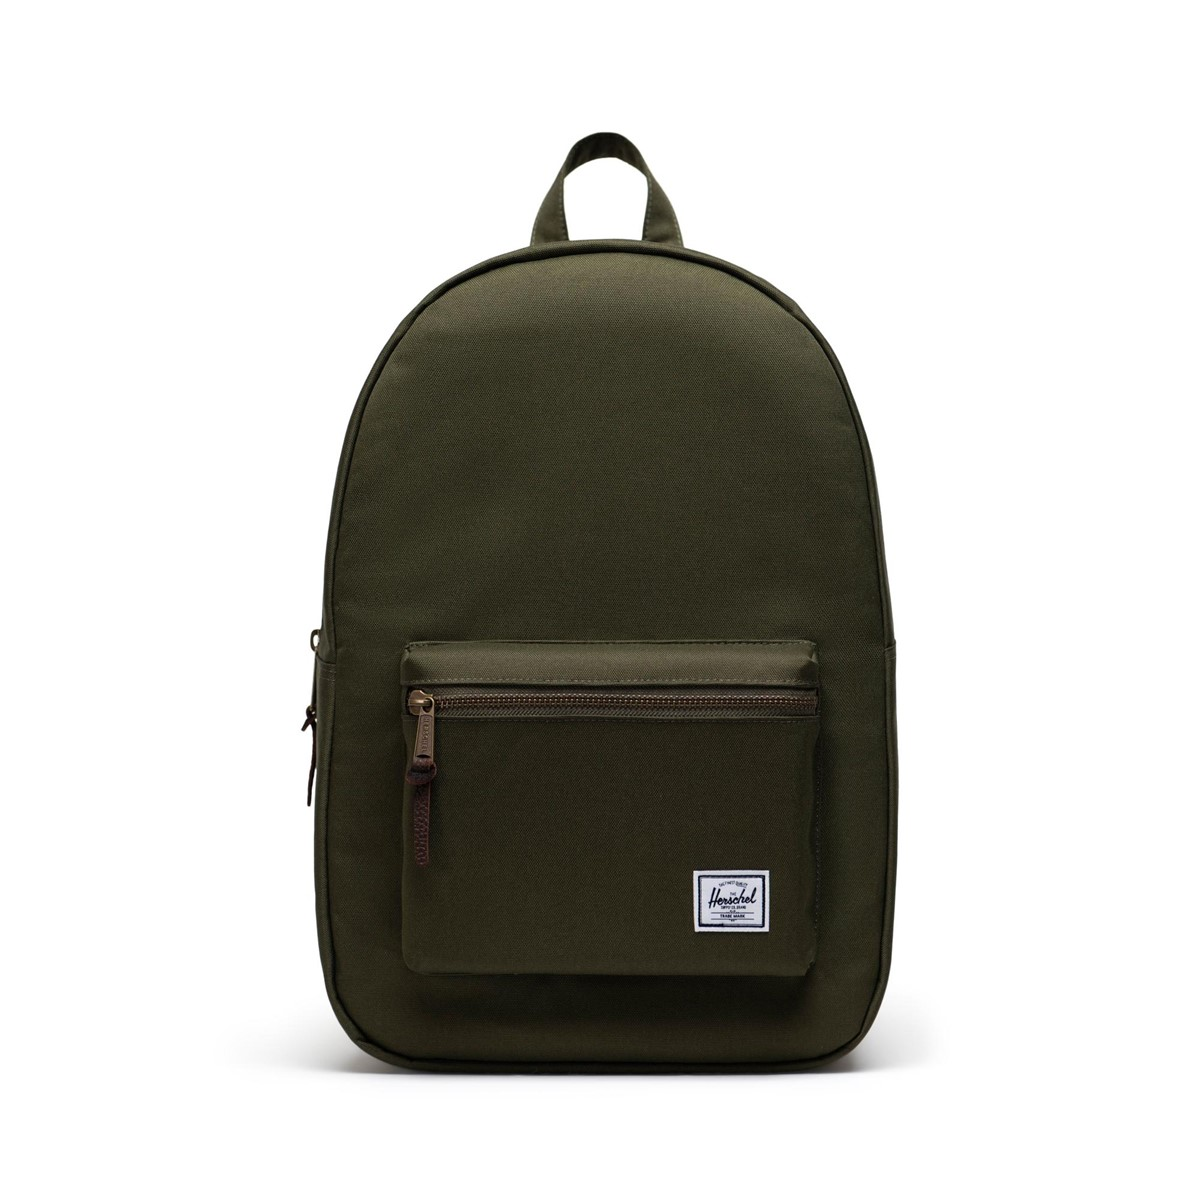 Settlement Backpack in Ivy Green